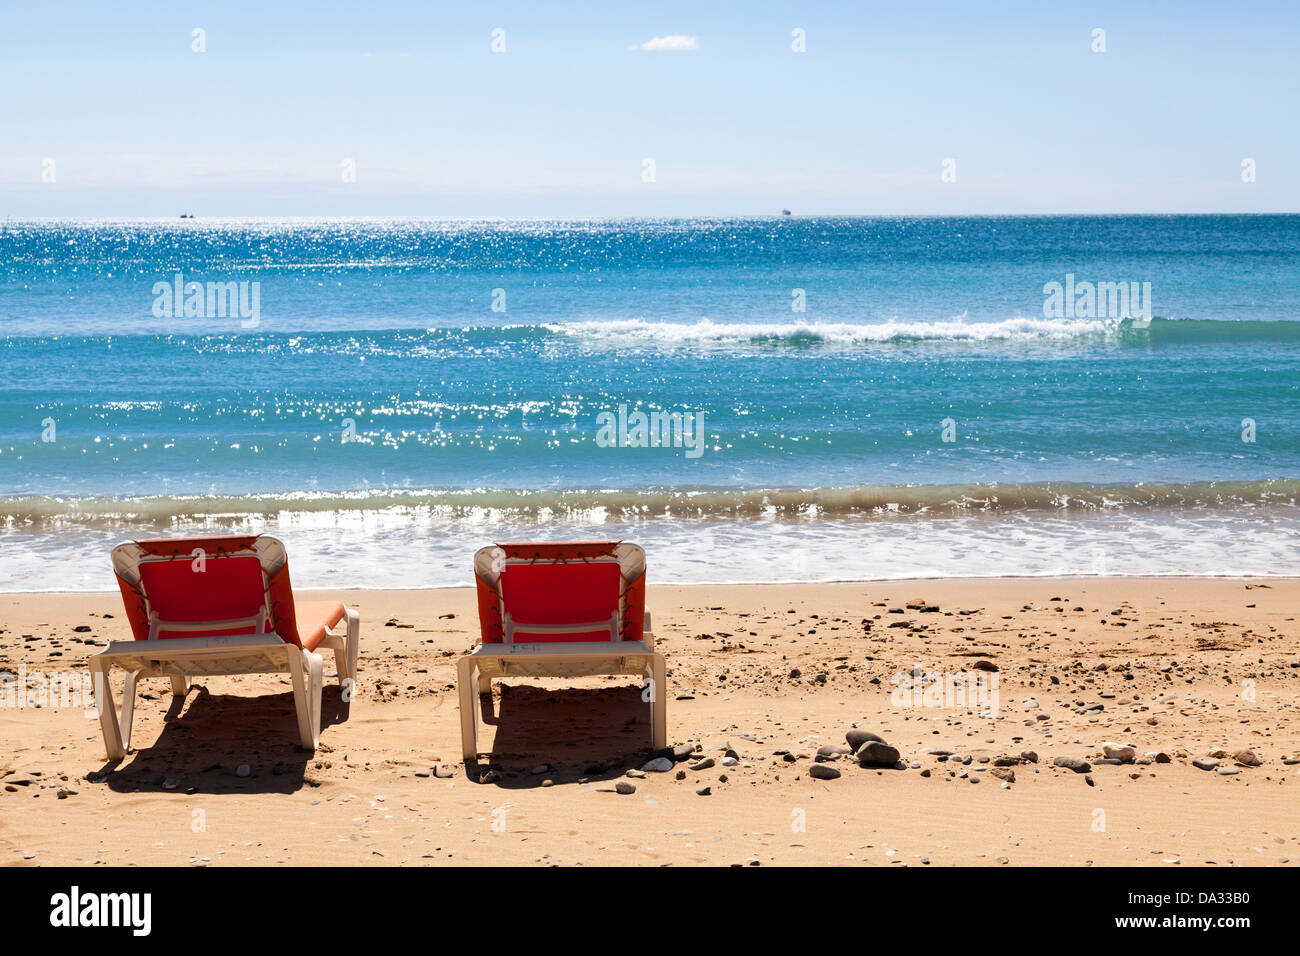 Two empty sun loungers on beach by sea - Stock Image